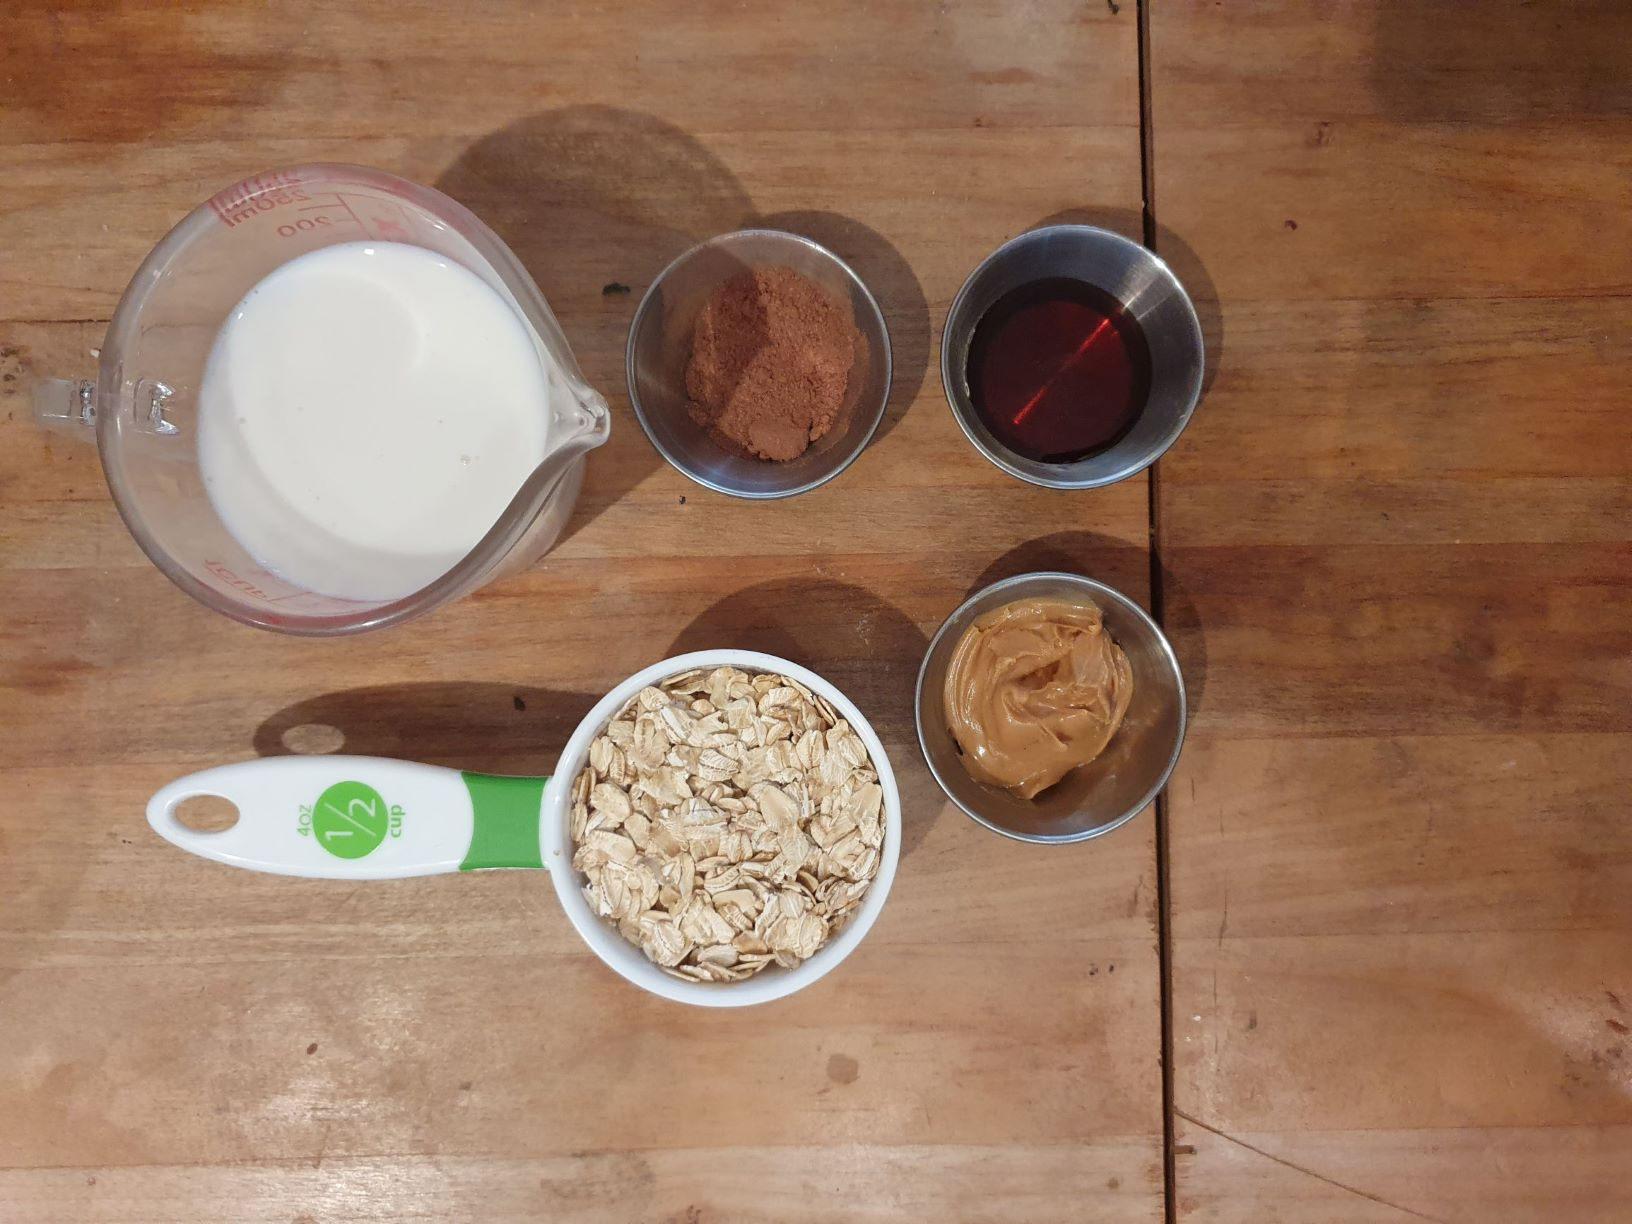 Vegan Peanutbutter Chocolate Reese's Overnight Oats Ingredients